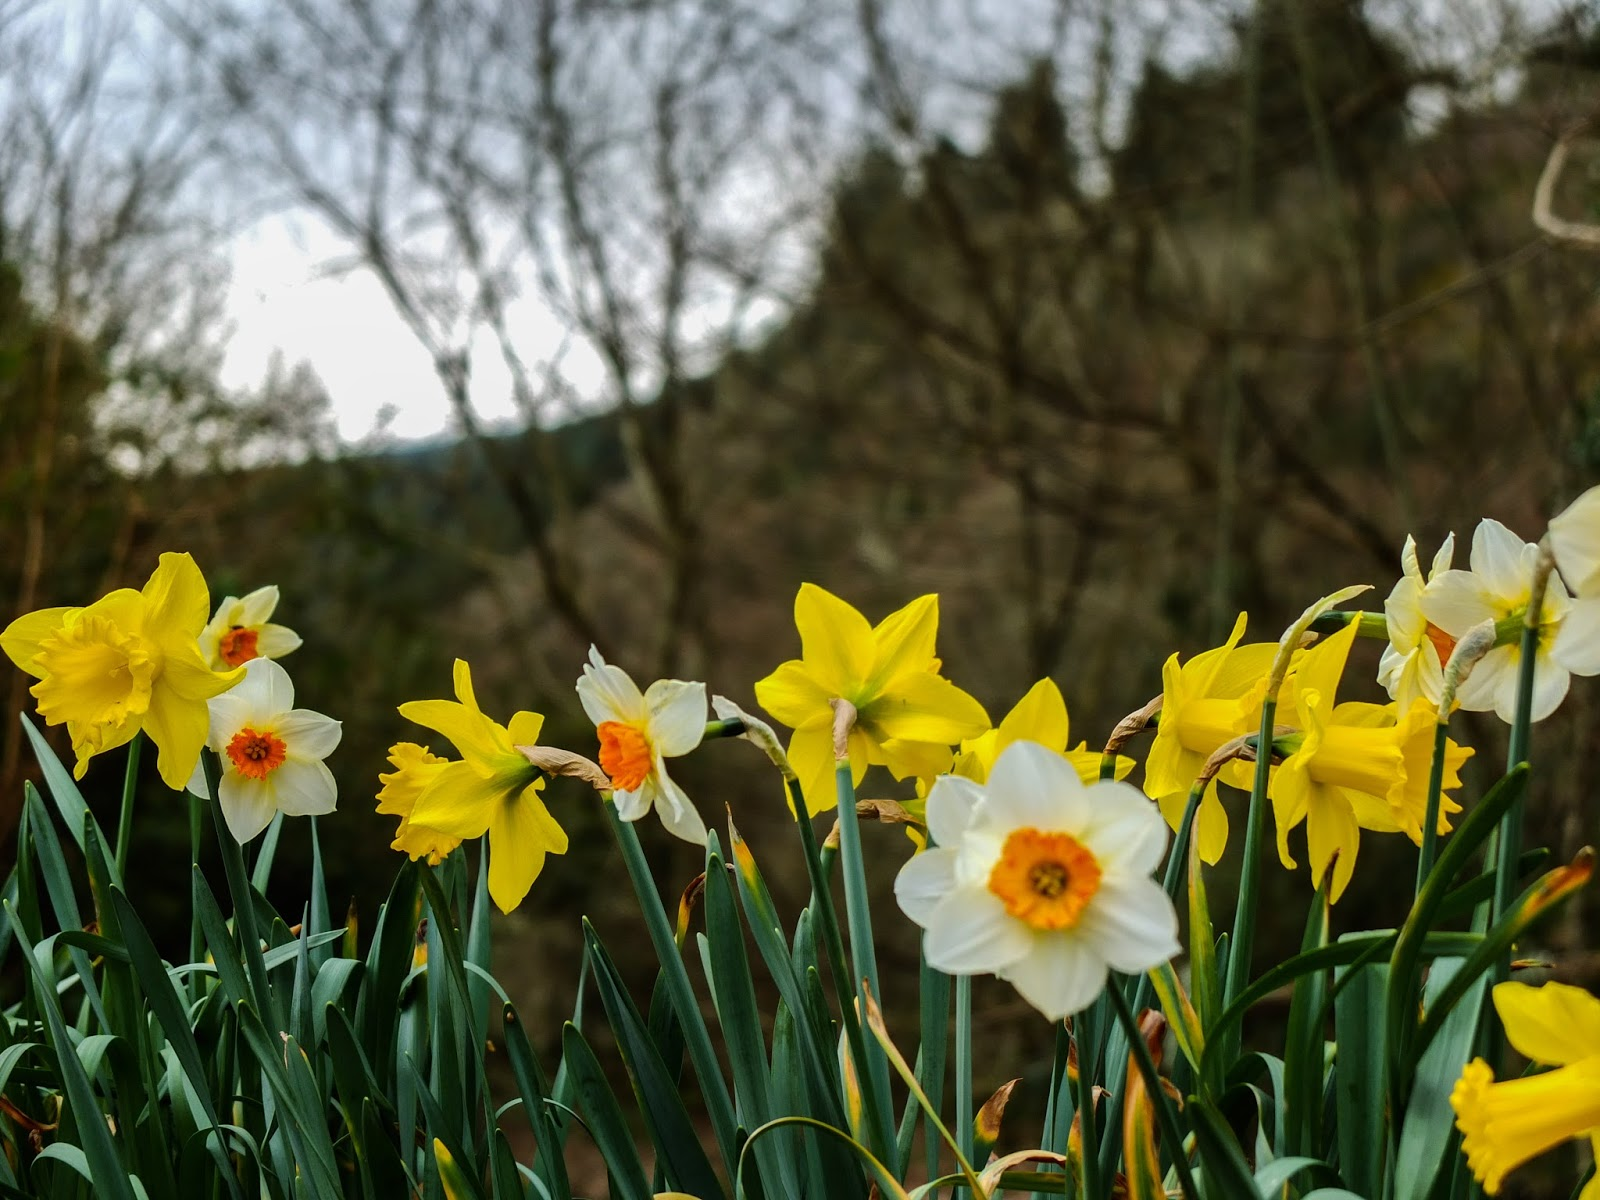 Daffodils pictured with forestry and mountains in the background.